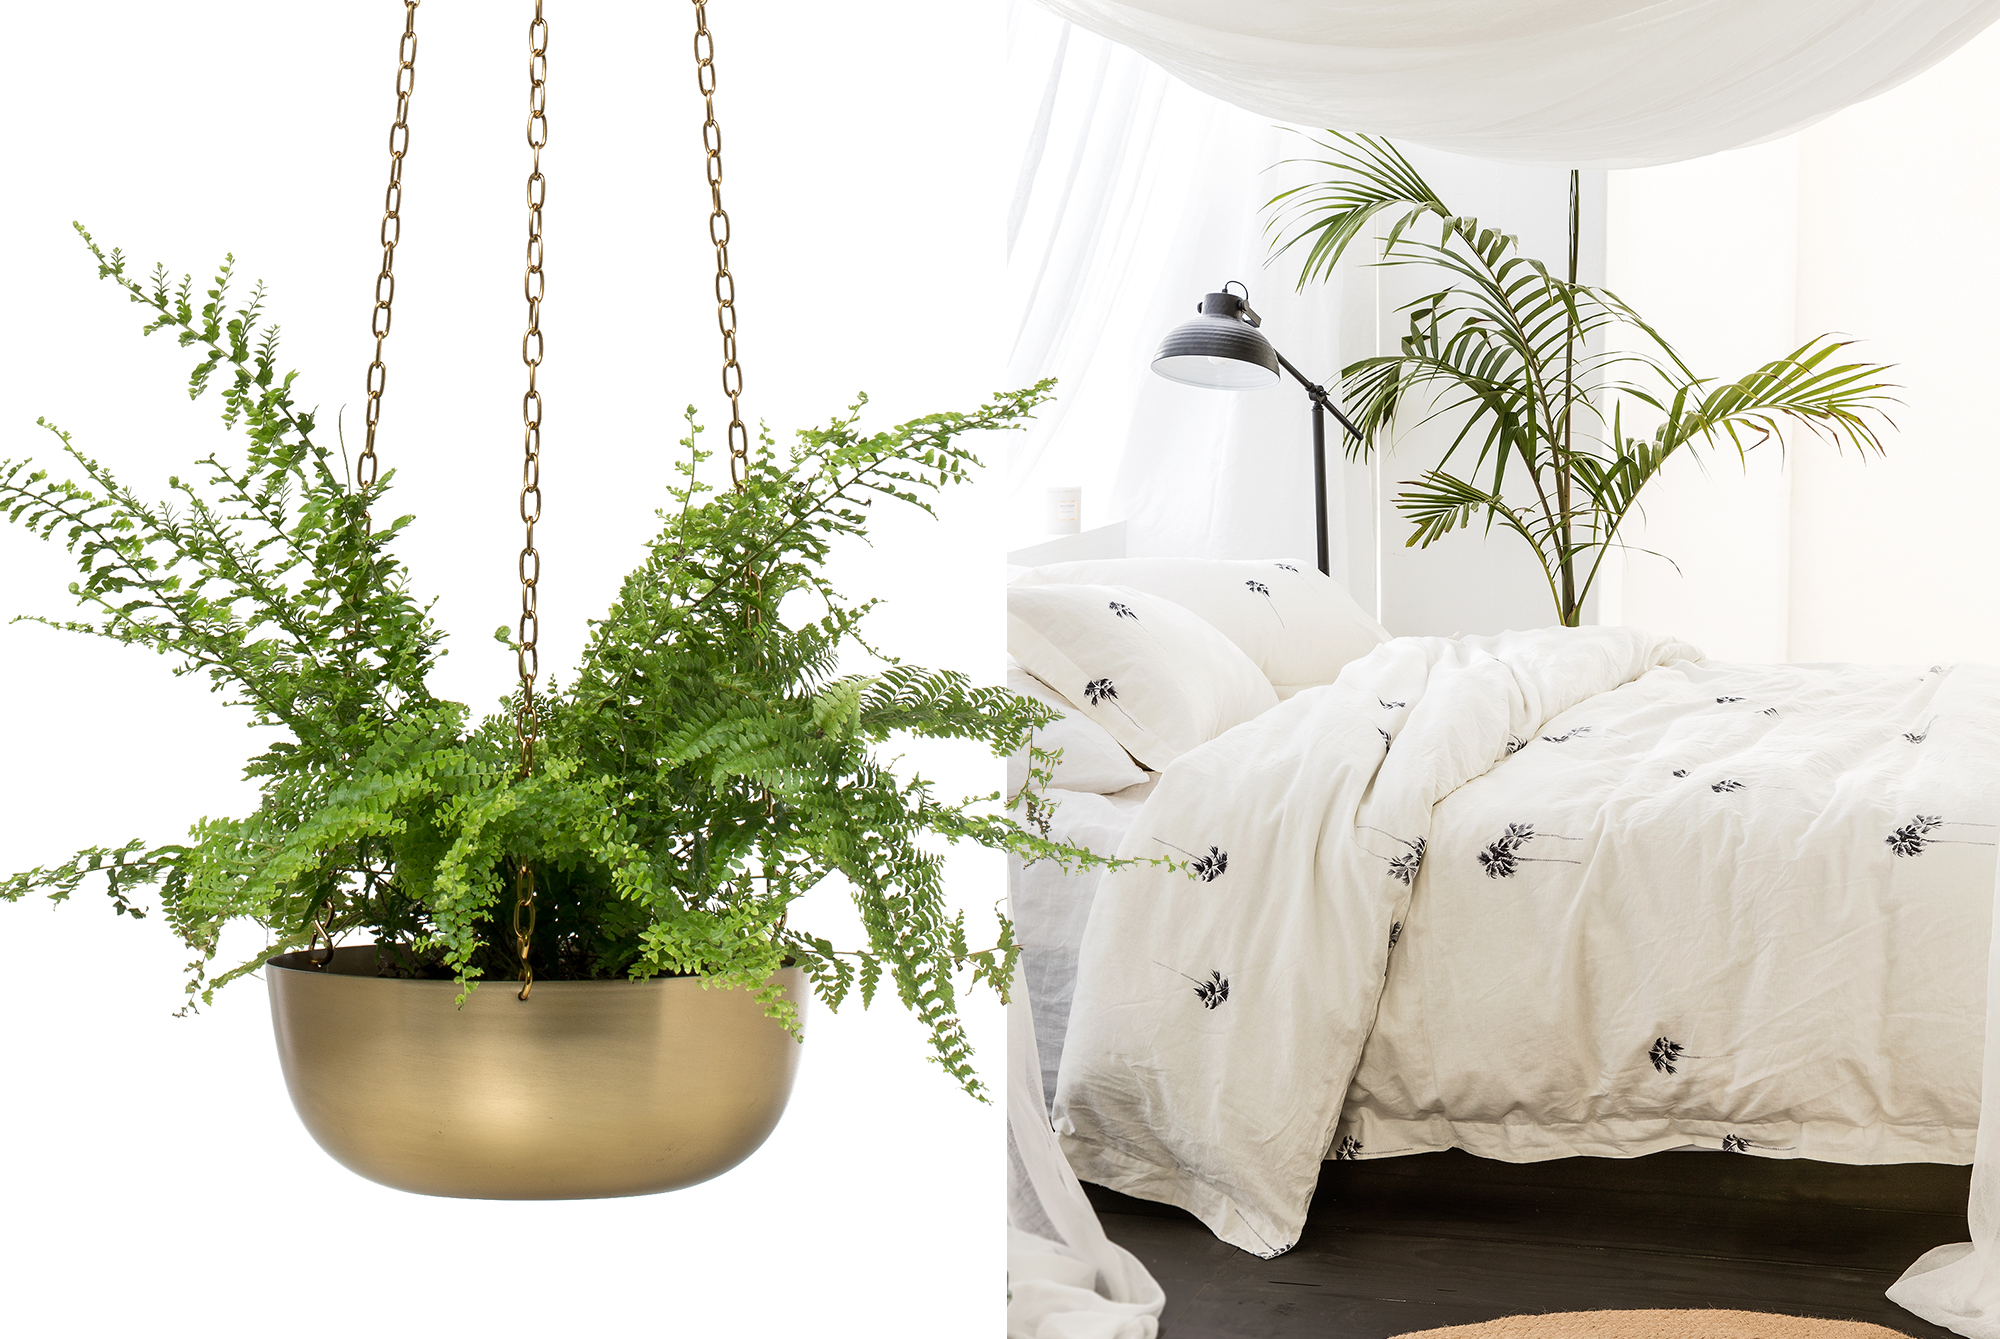 Interior Trends: Bring outdoors inside with hanging plants and indoor pots